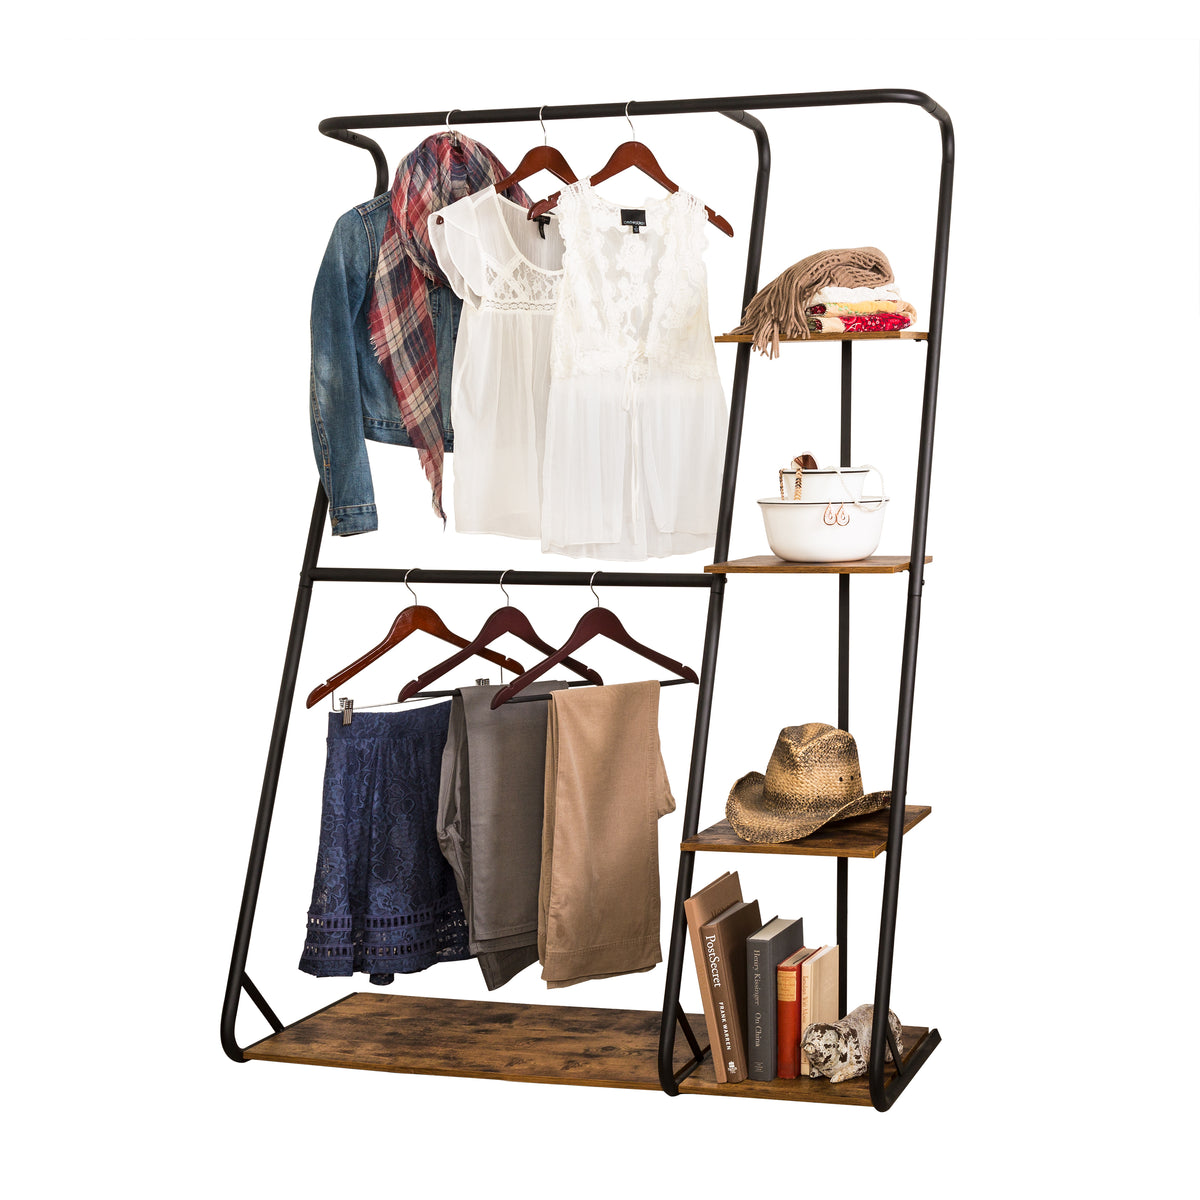 Z Frame Free Standing Closet Double Bar Garment Rack With